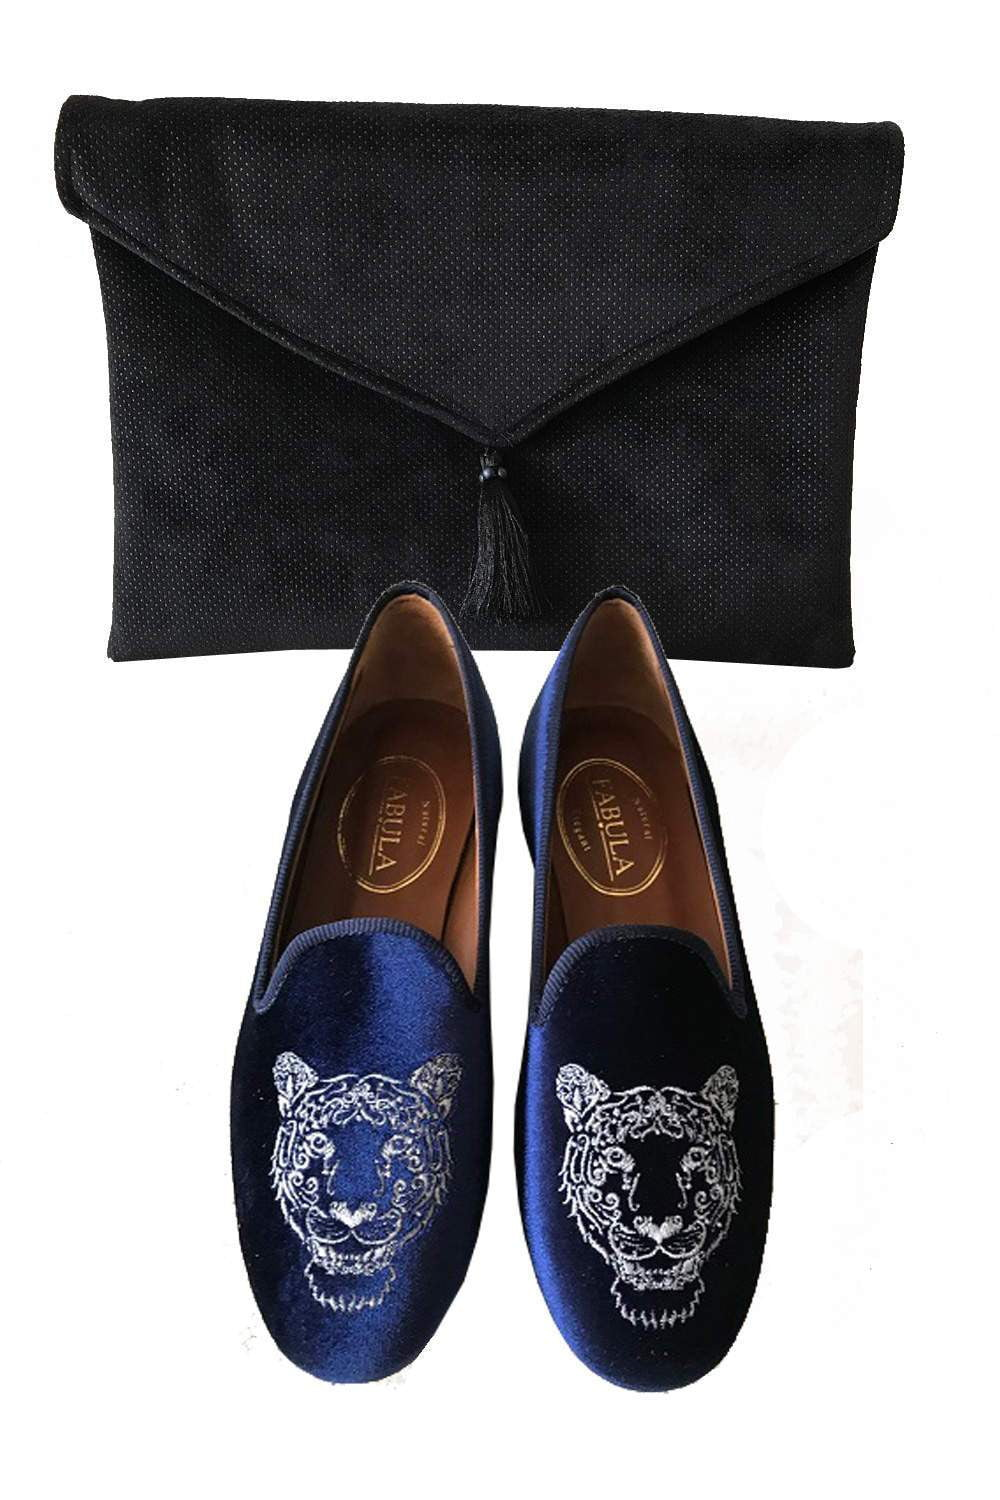 handmade navy slippers with a leon embroidery